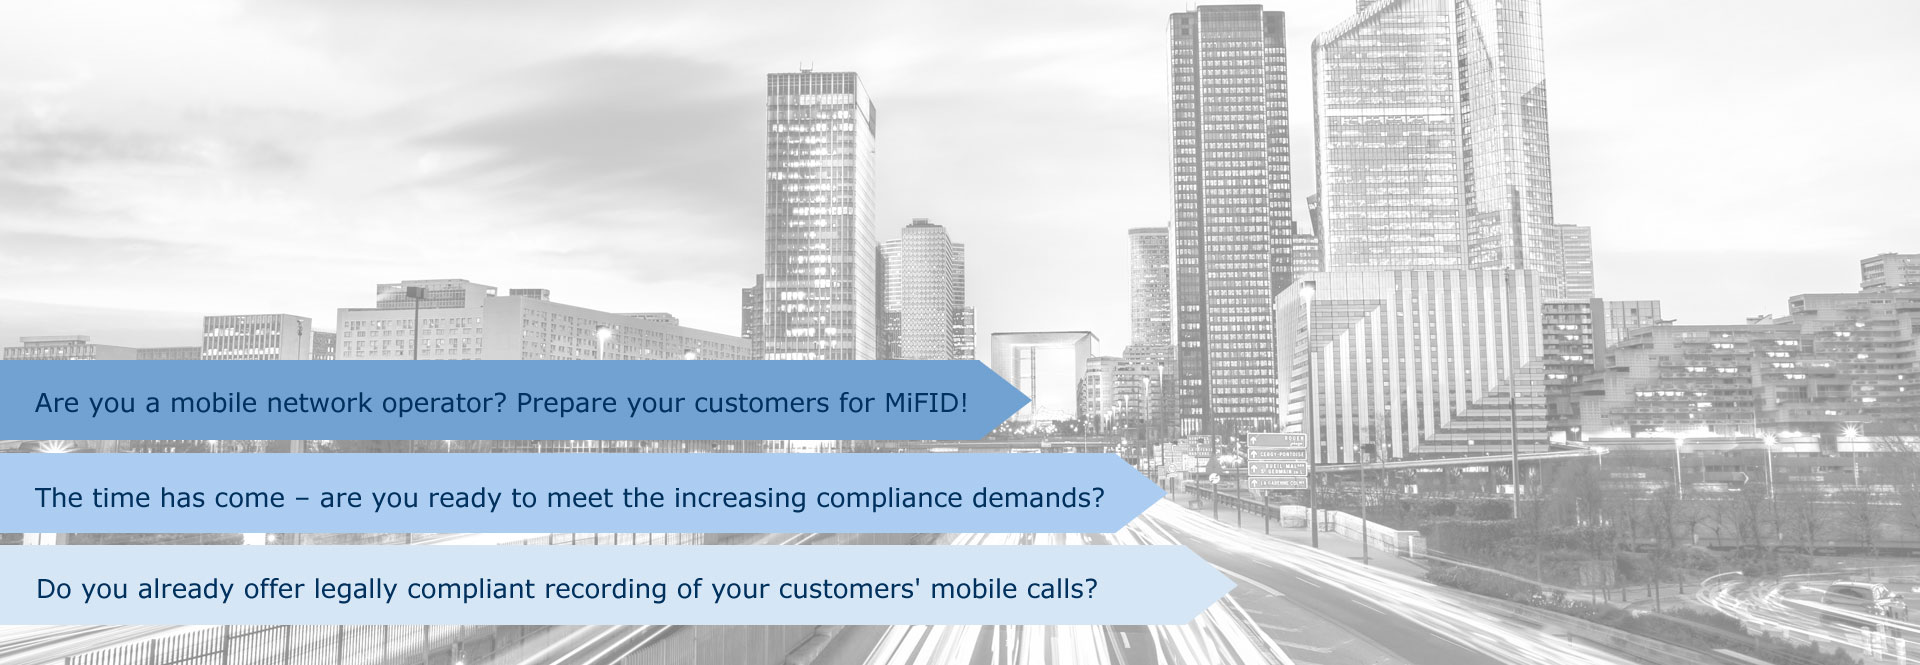 Are you a mobile network operator? Prepare your customers for MiFID! Do you already offer legally compliant recording of your customers' mobile calls? Time has come! That is how you can react to the increasing compliance demands.